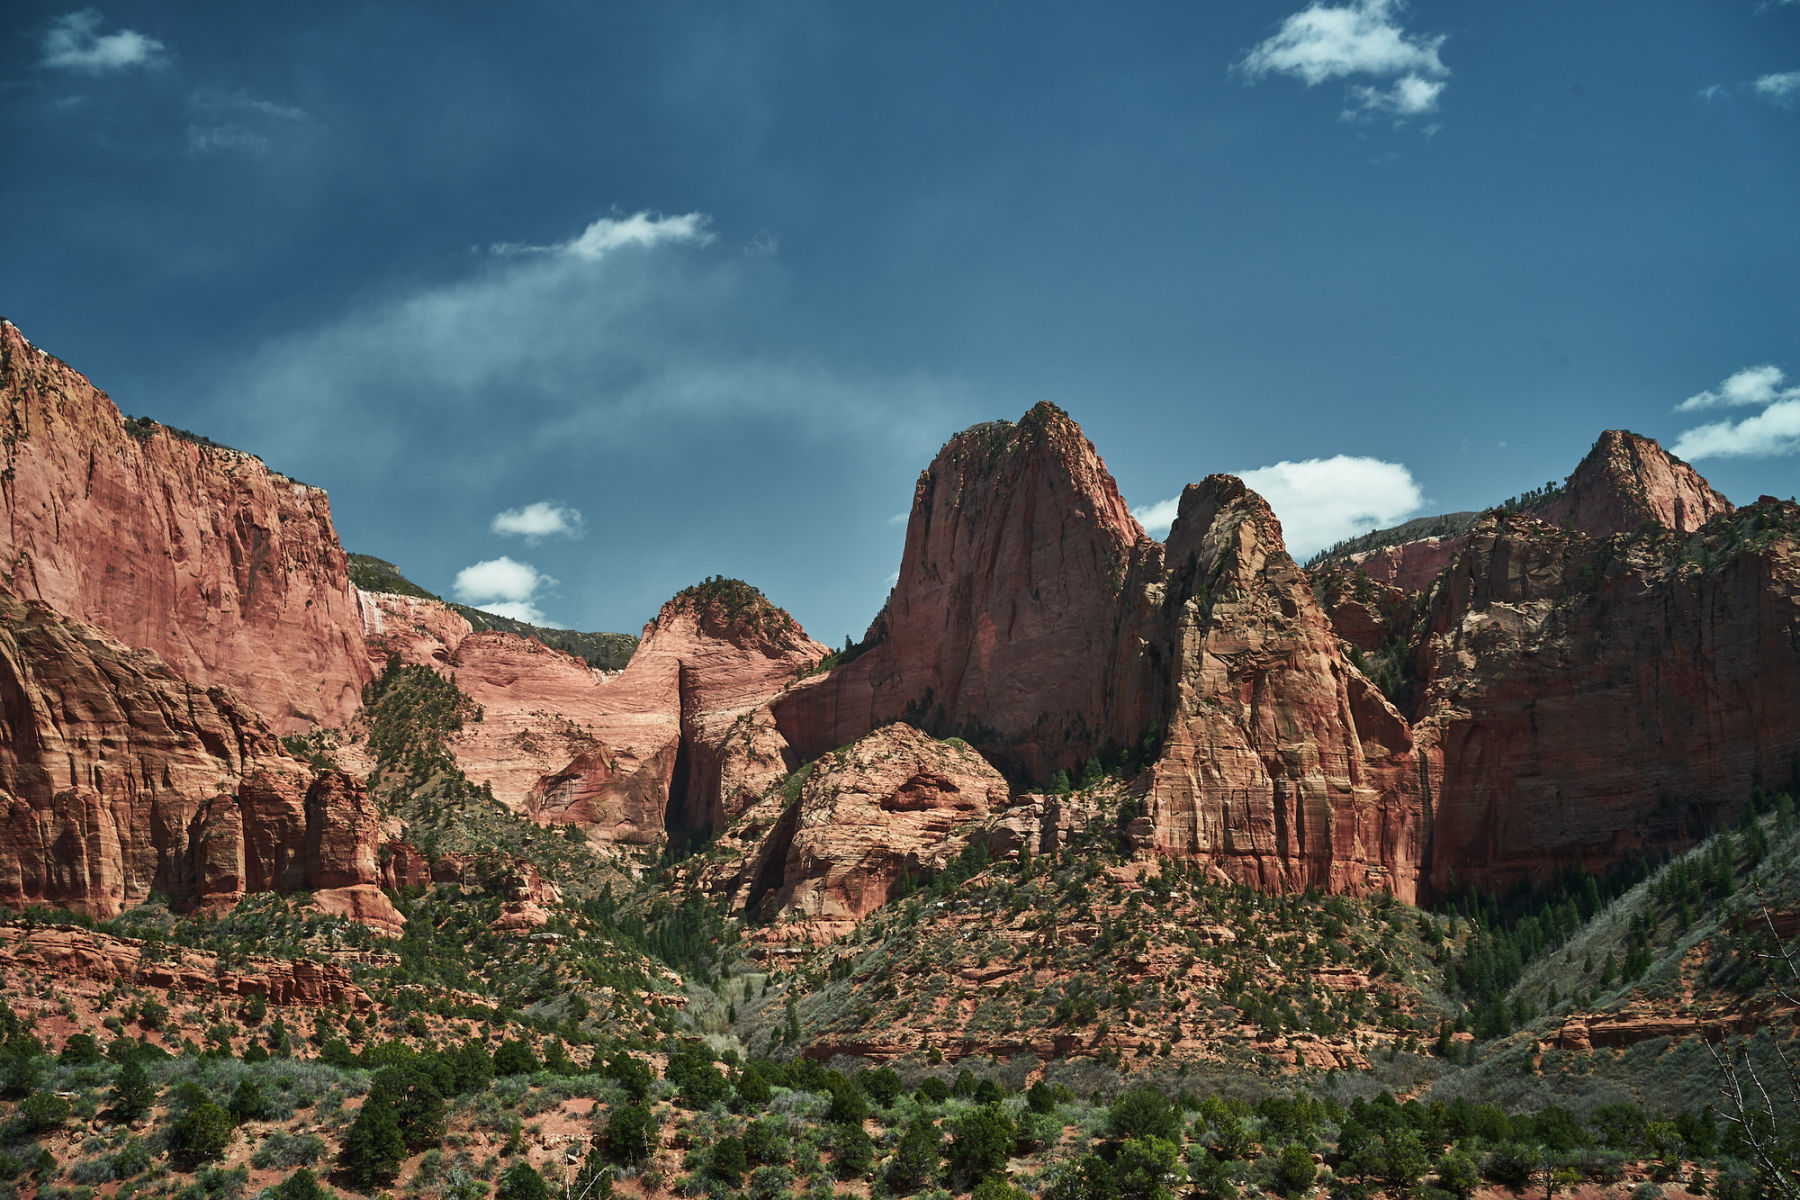 Photo of Kolob Canyons in Zion National Park by Nick Roush Photography. Click through for your complete guide to visiting Kolob Canyons. www.amandaoutside.com #zion #utah #hikingtrails